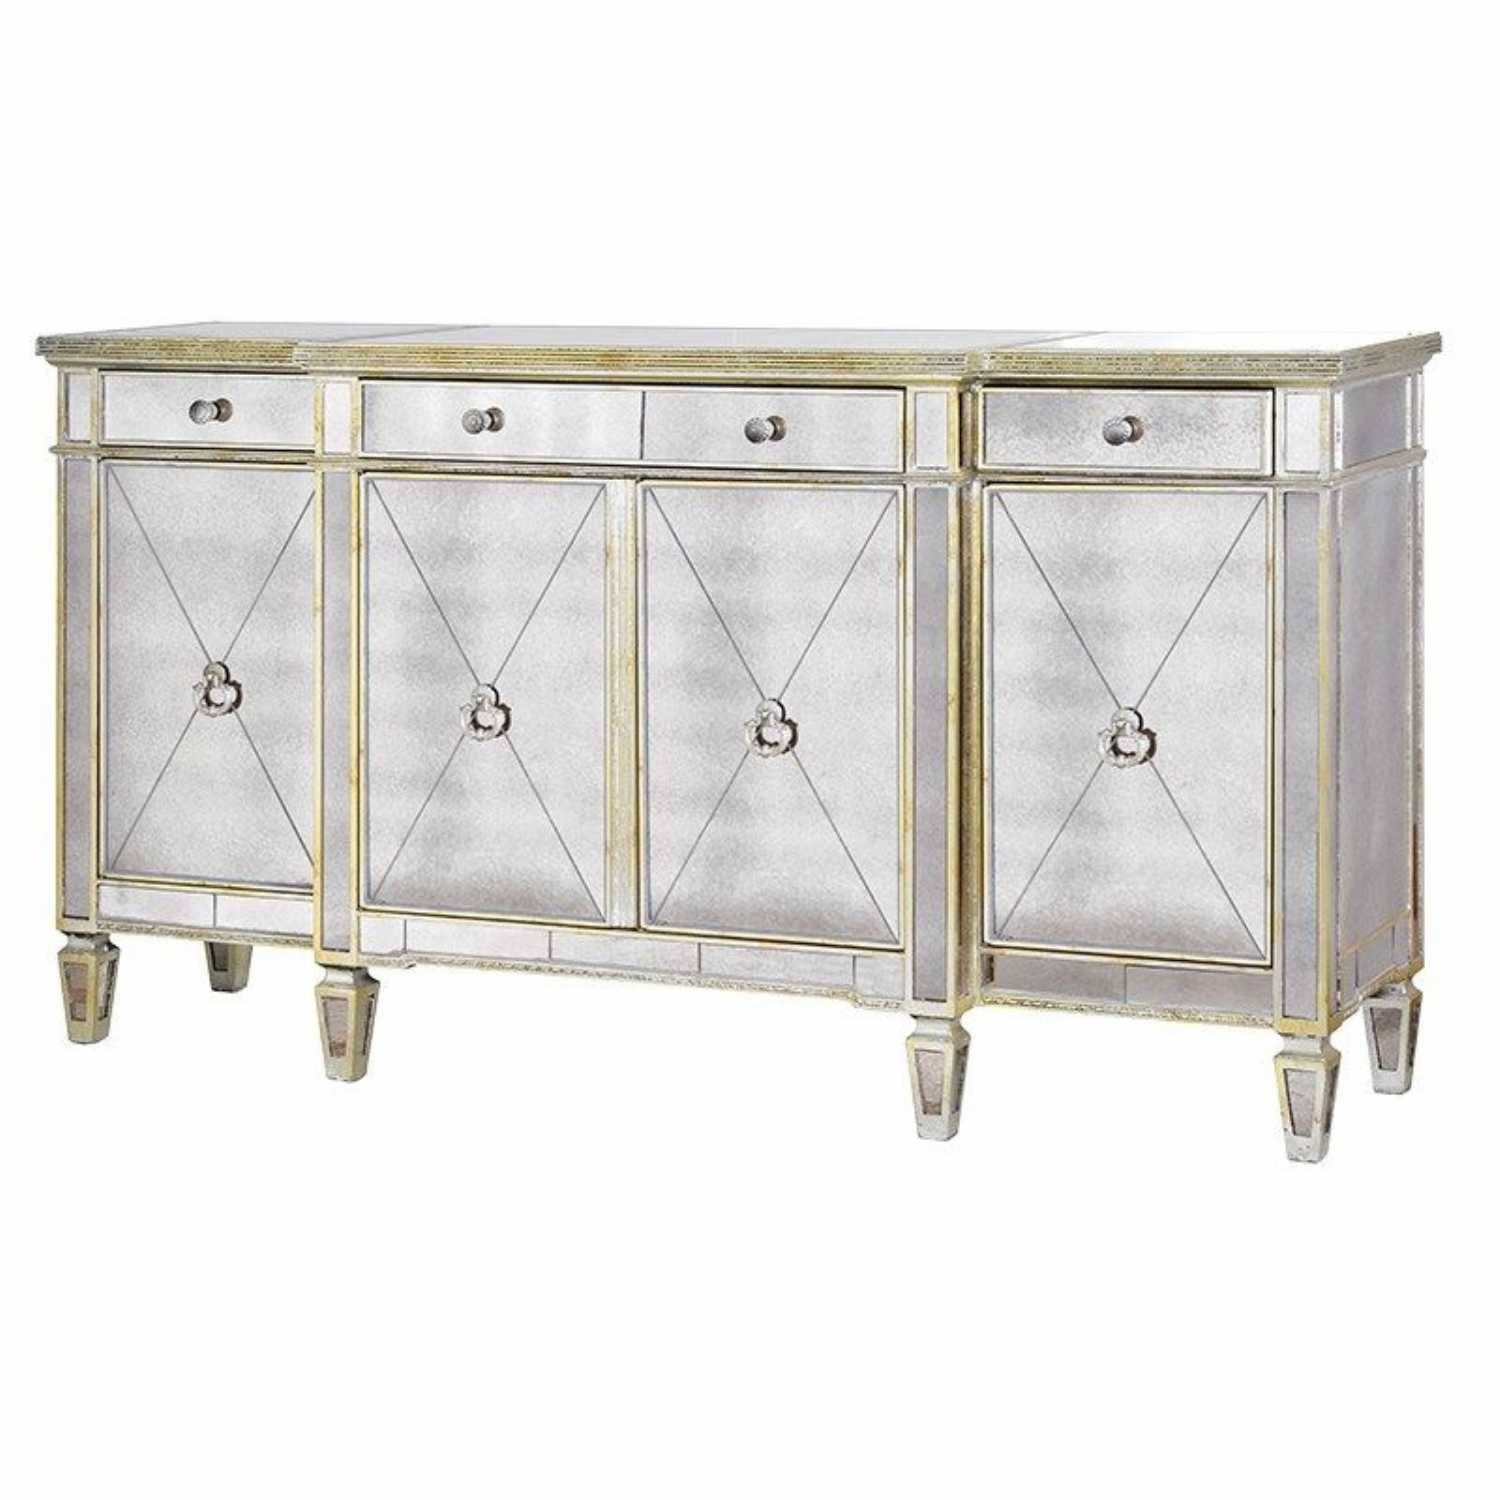 Large Antique Seville Venetian Mirrored Glass Sideboard 4 Door throughout Venetian Mirrored Chest Of Drawers (Image 9 of 25)